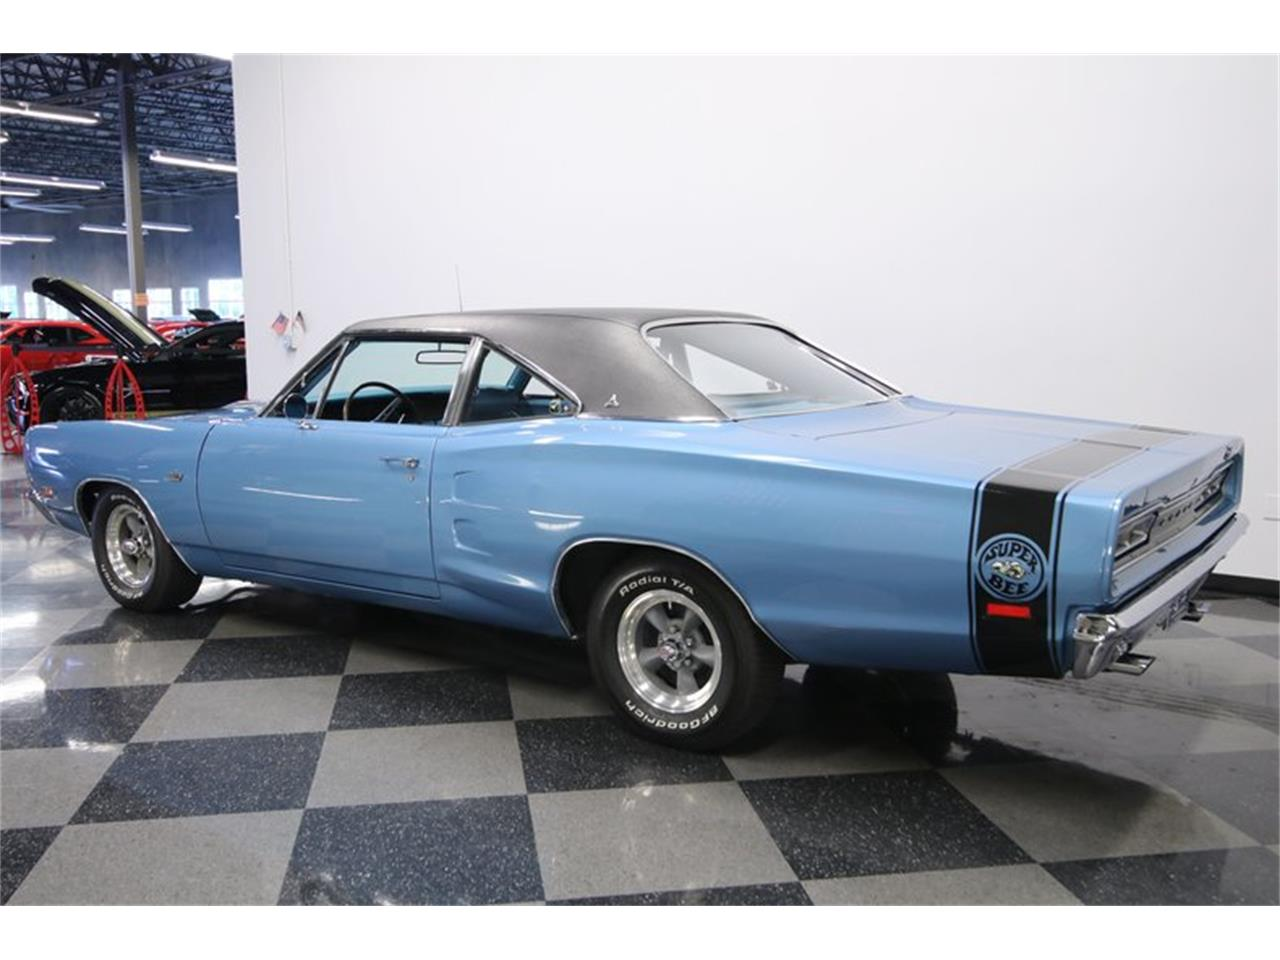 Large Picture of Classic '69 Super Bee located in Lutz Florida - $43,995.00 Offered by Streetside Classics - Tampa - QP0O